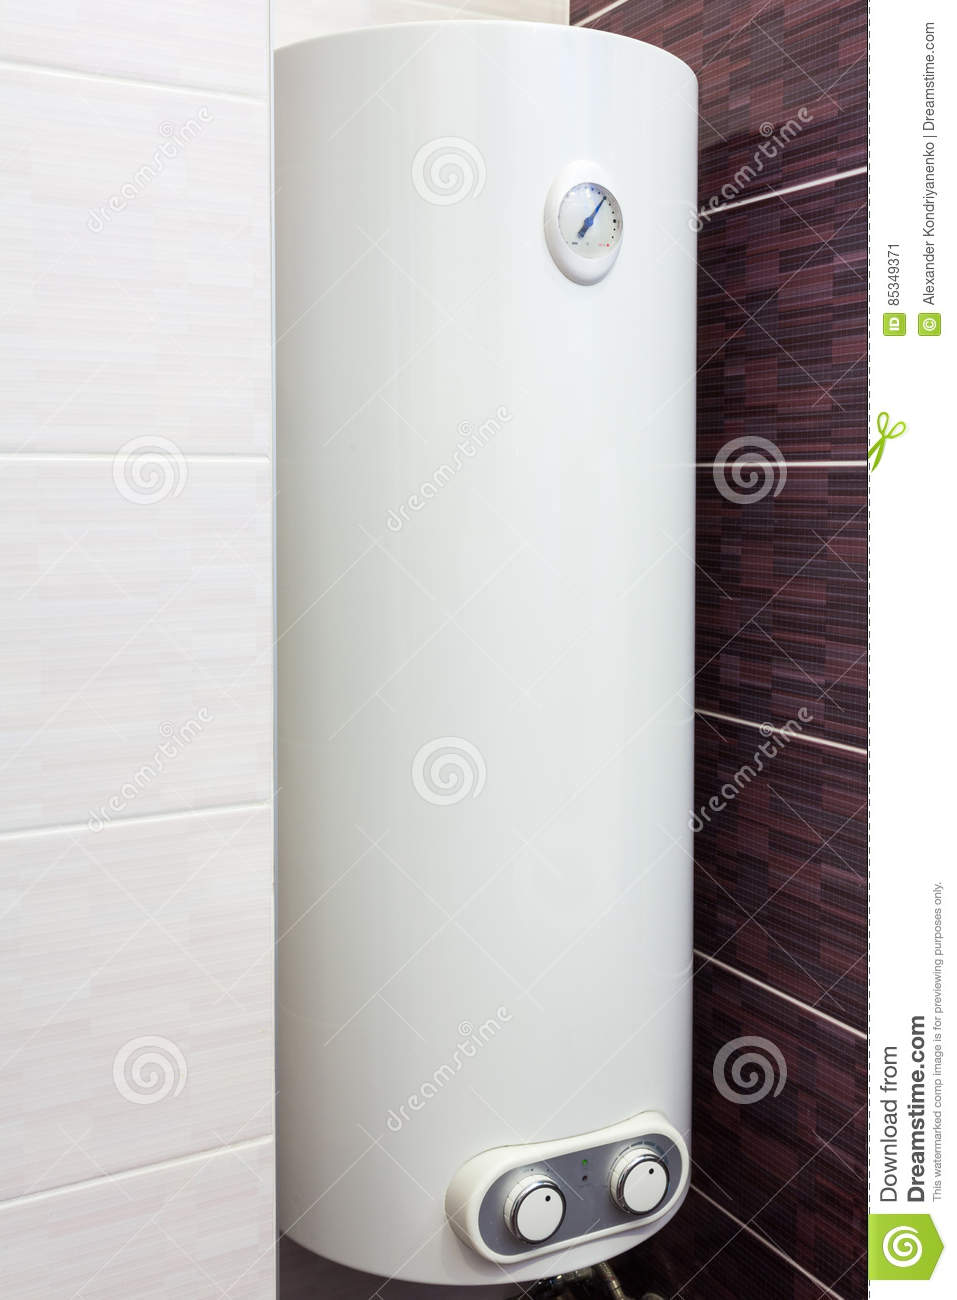 Bathroom Electric Heaters Electric Boiler Wall Water Heater In Bathroom Stock Photo Image